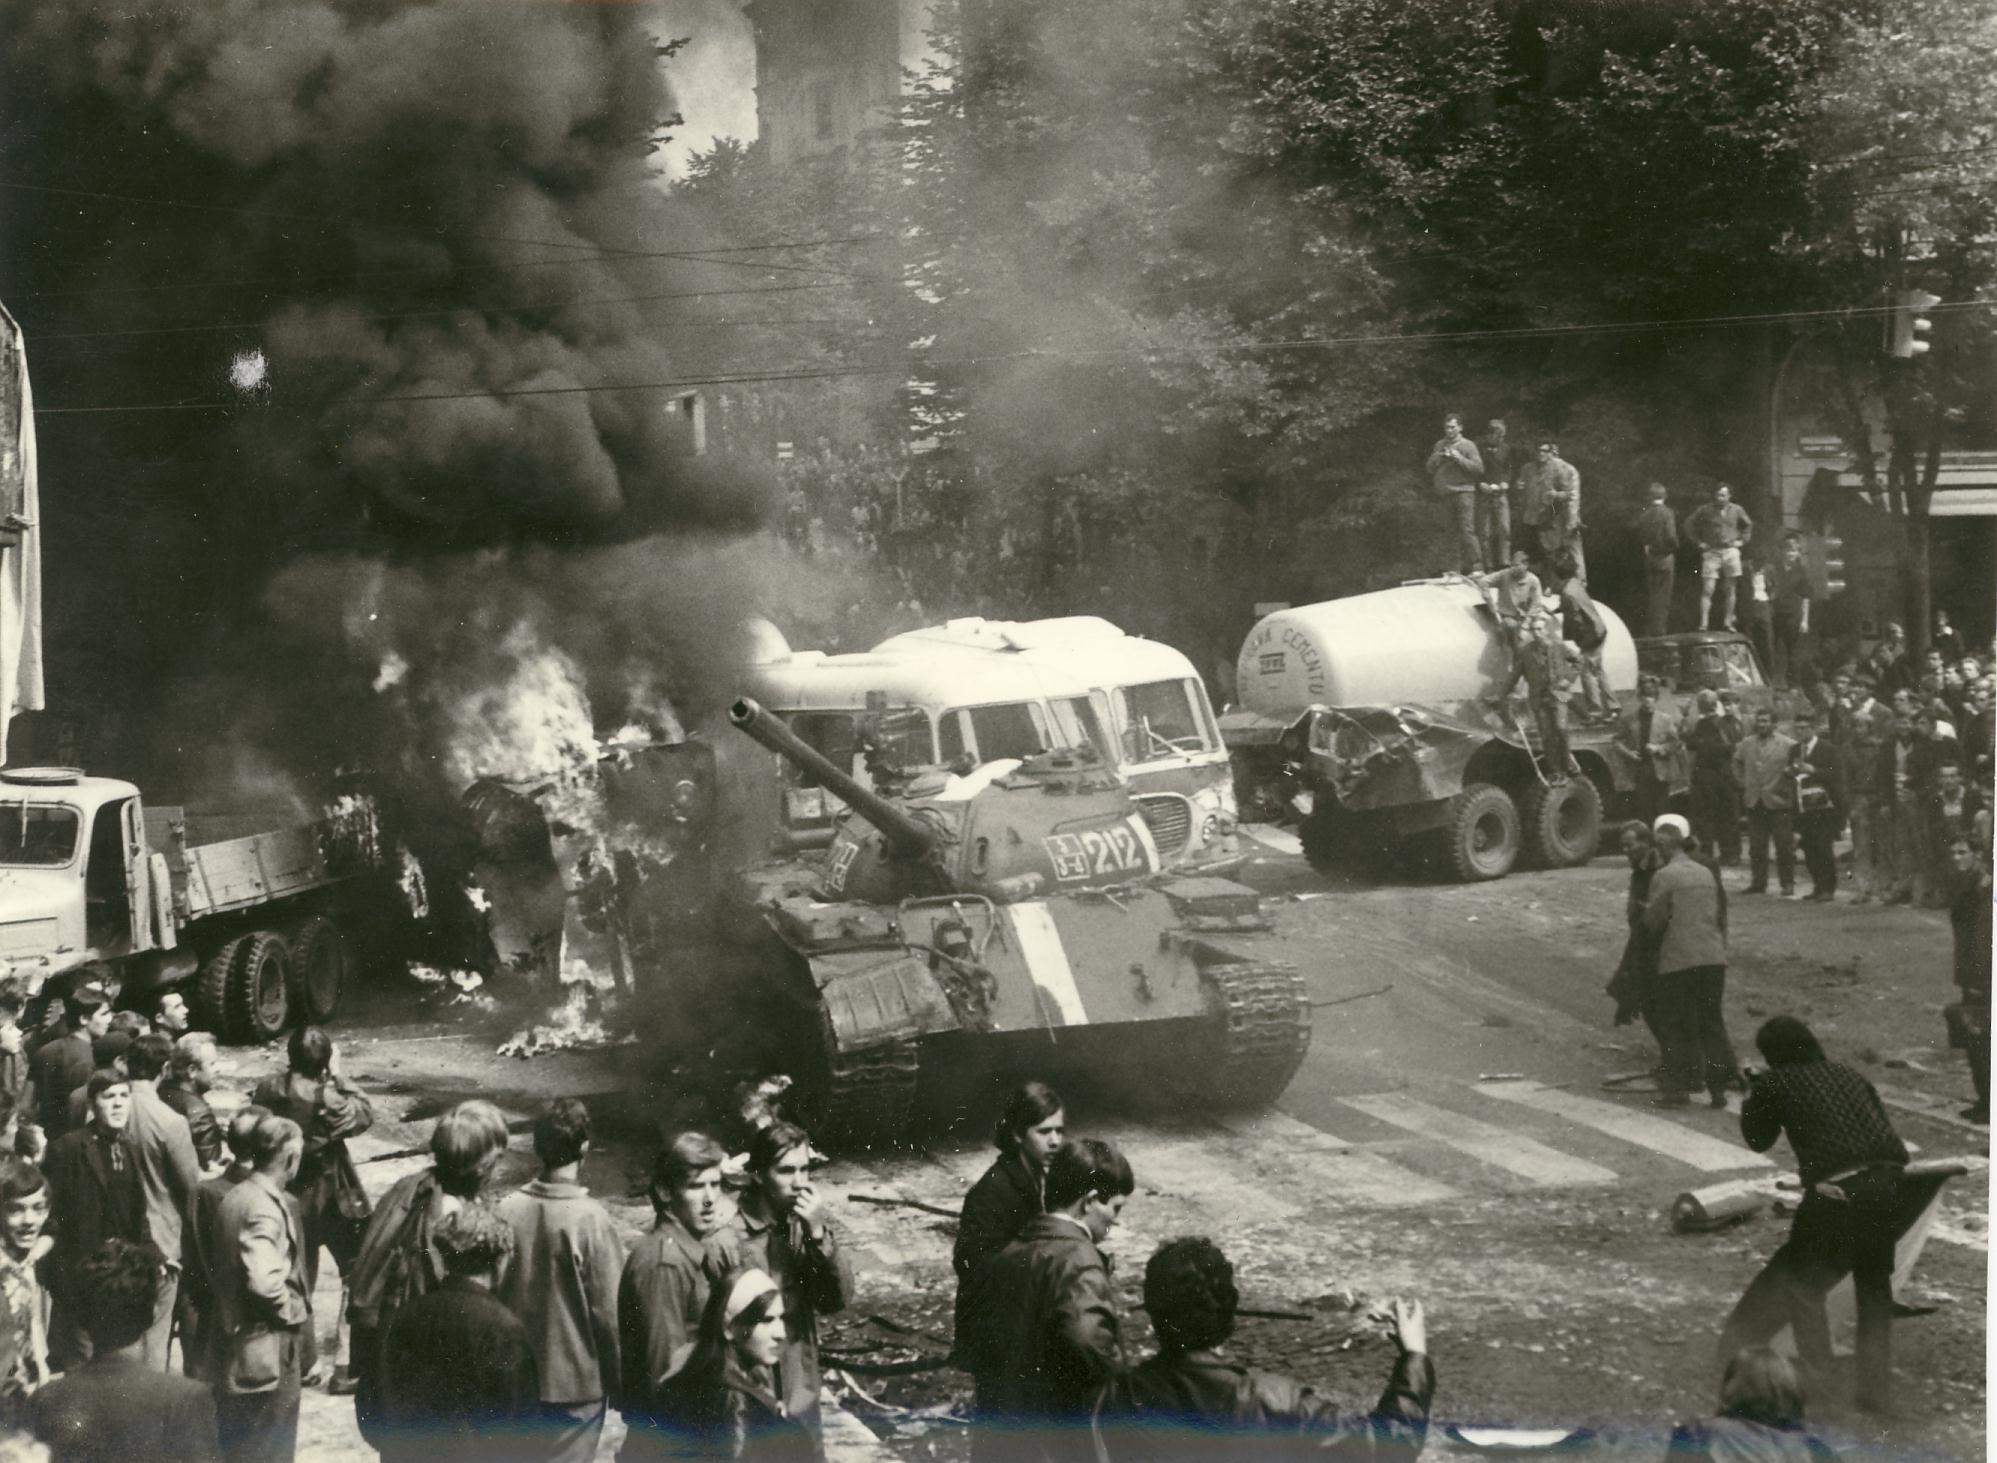 the prague spring 1968 The prague spring was a period of opening and political reforms within communist czechoslovakia that was ended violently through the intervention of the warsaw pact.